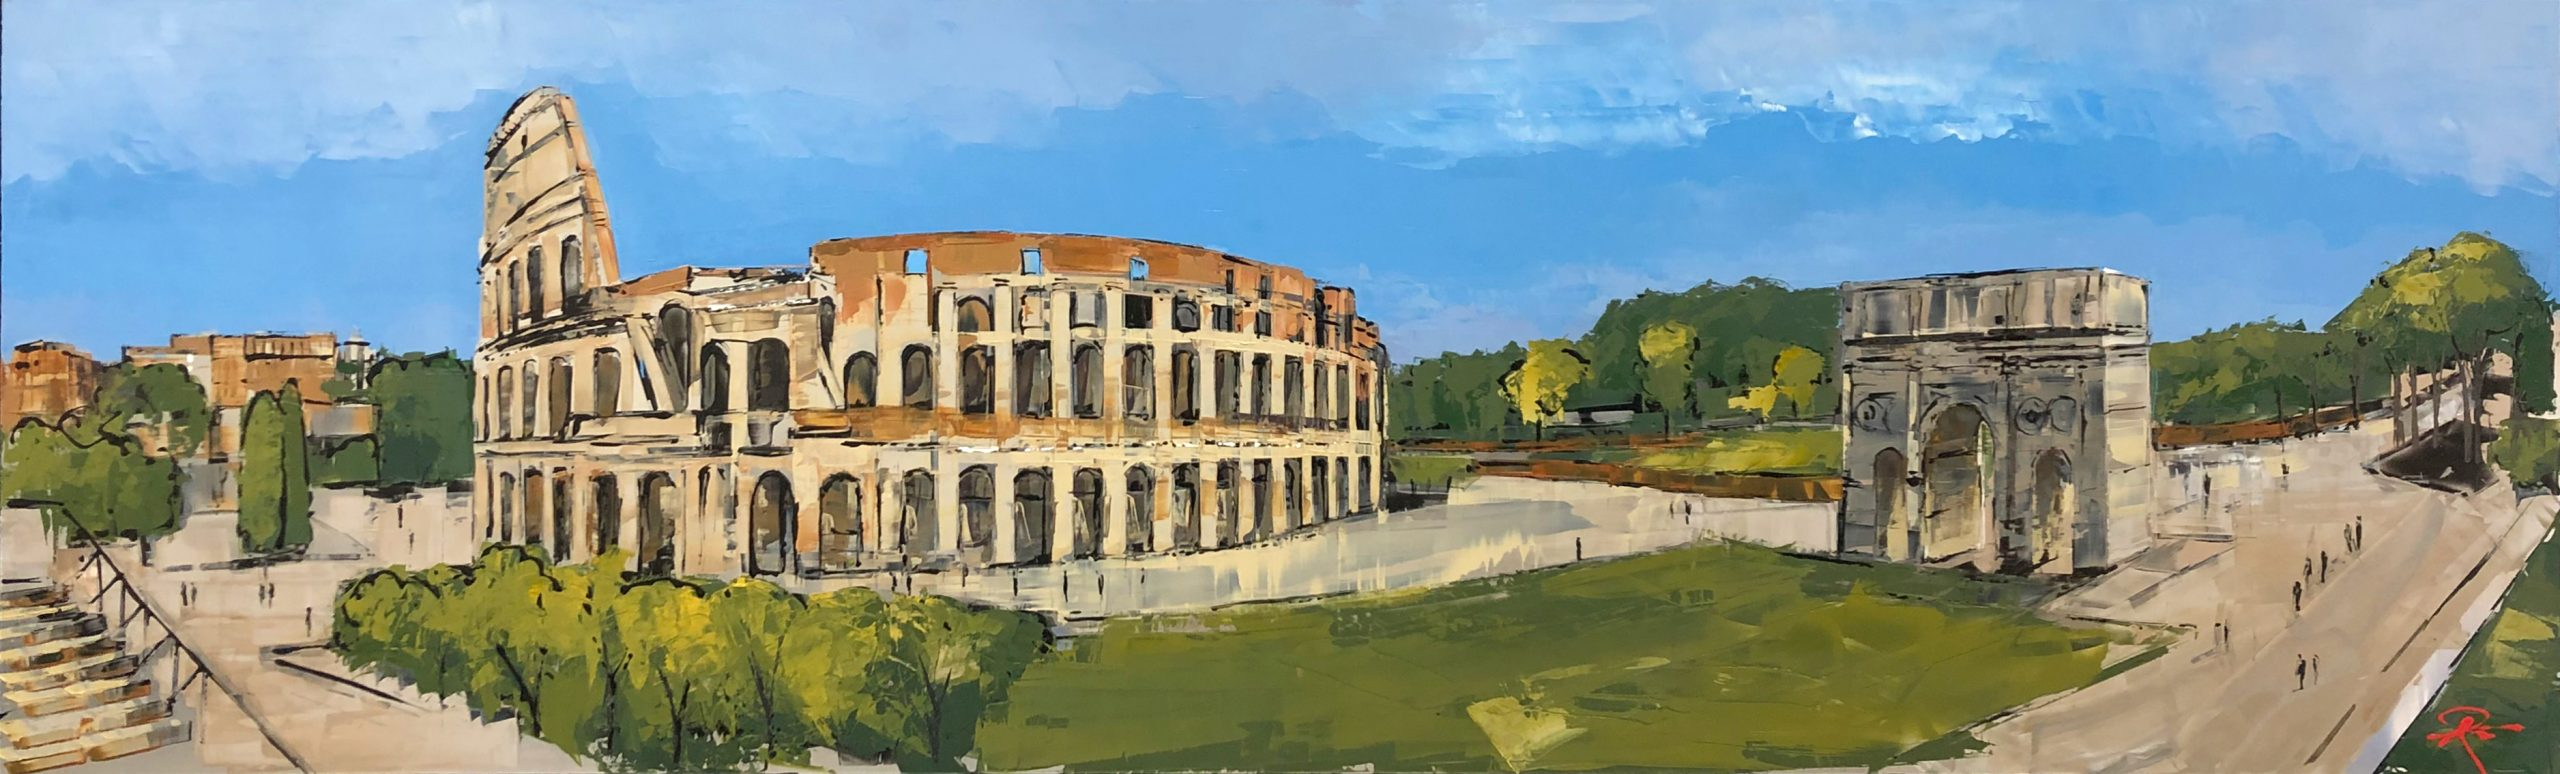 Sights of Rome - Original Painting by UK Contemporary Artist Paul Kenton, from the International Cityscapes collection